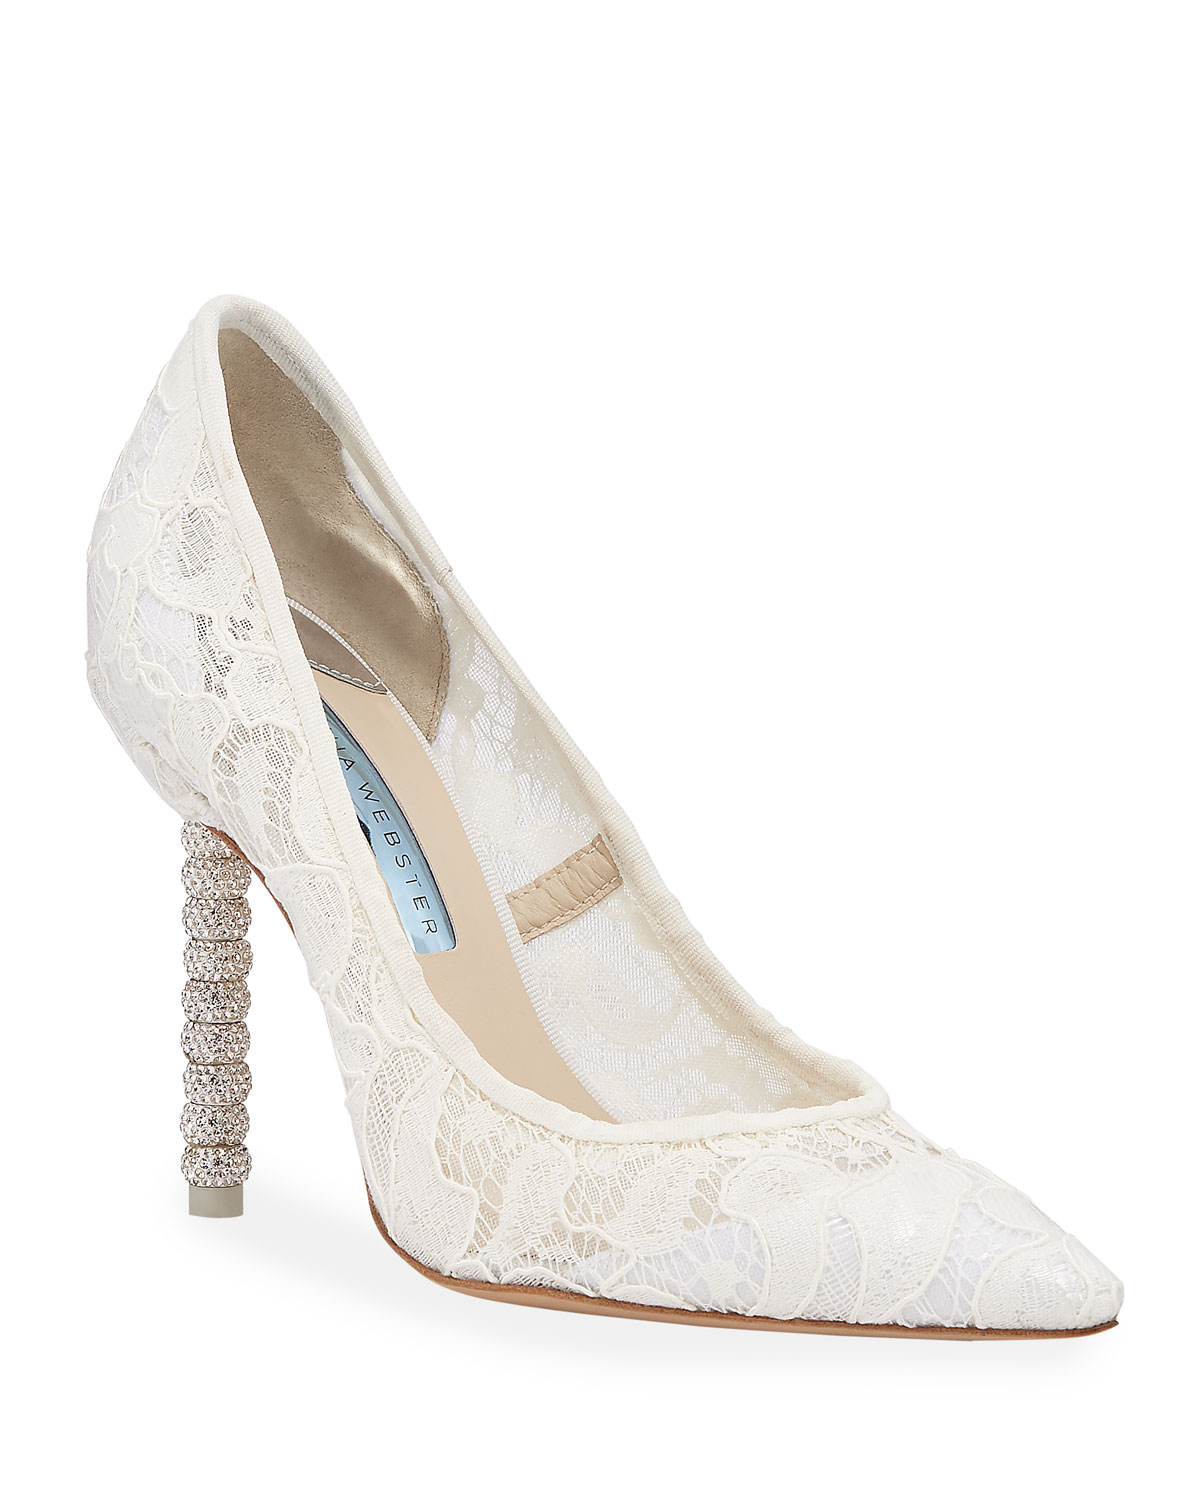 Sophia Webster Pumps COCO CRYSTAL LACE BRIDAL PUMPS